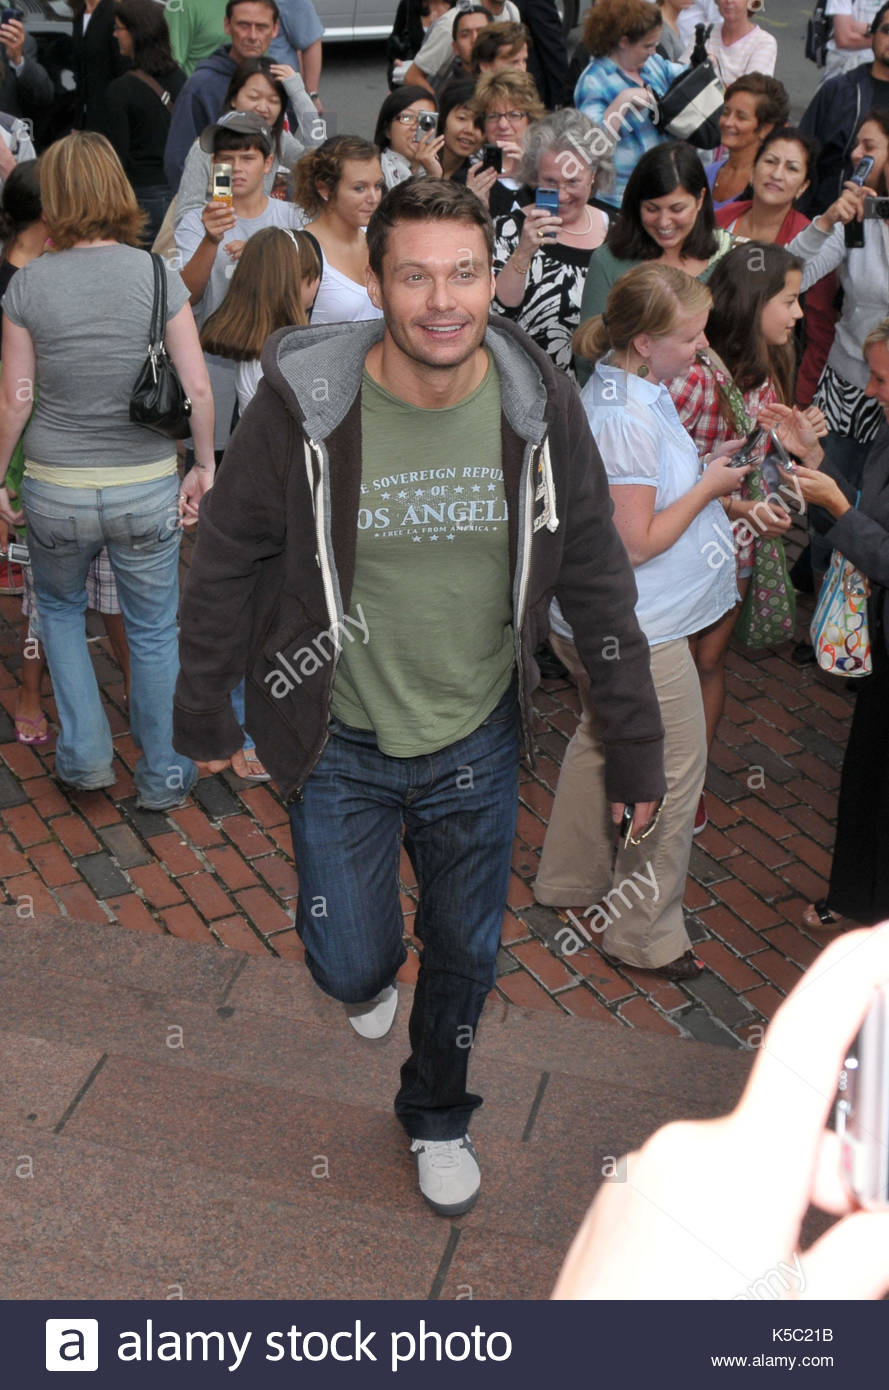 Ryan seacrest american idol judges stop to meet and greet fans american idol judges stop to meet and greet fans guest judge victoria beckham doesnt do the same m4hsunfo